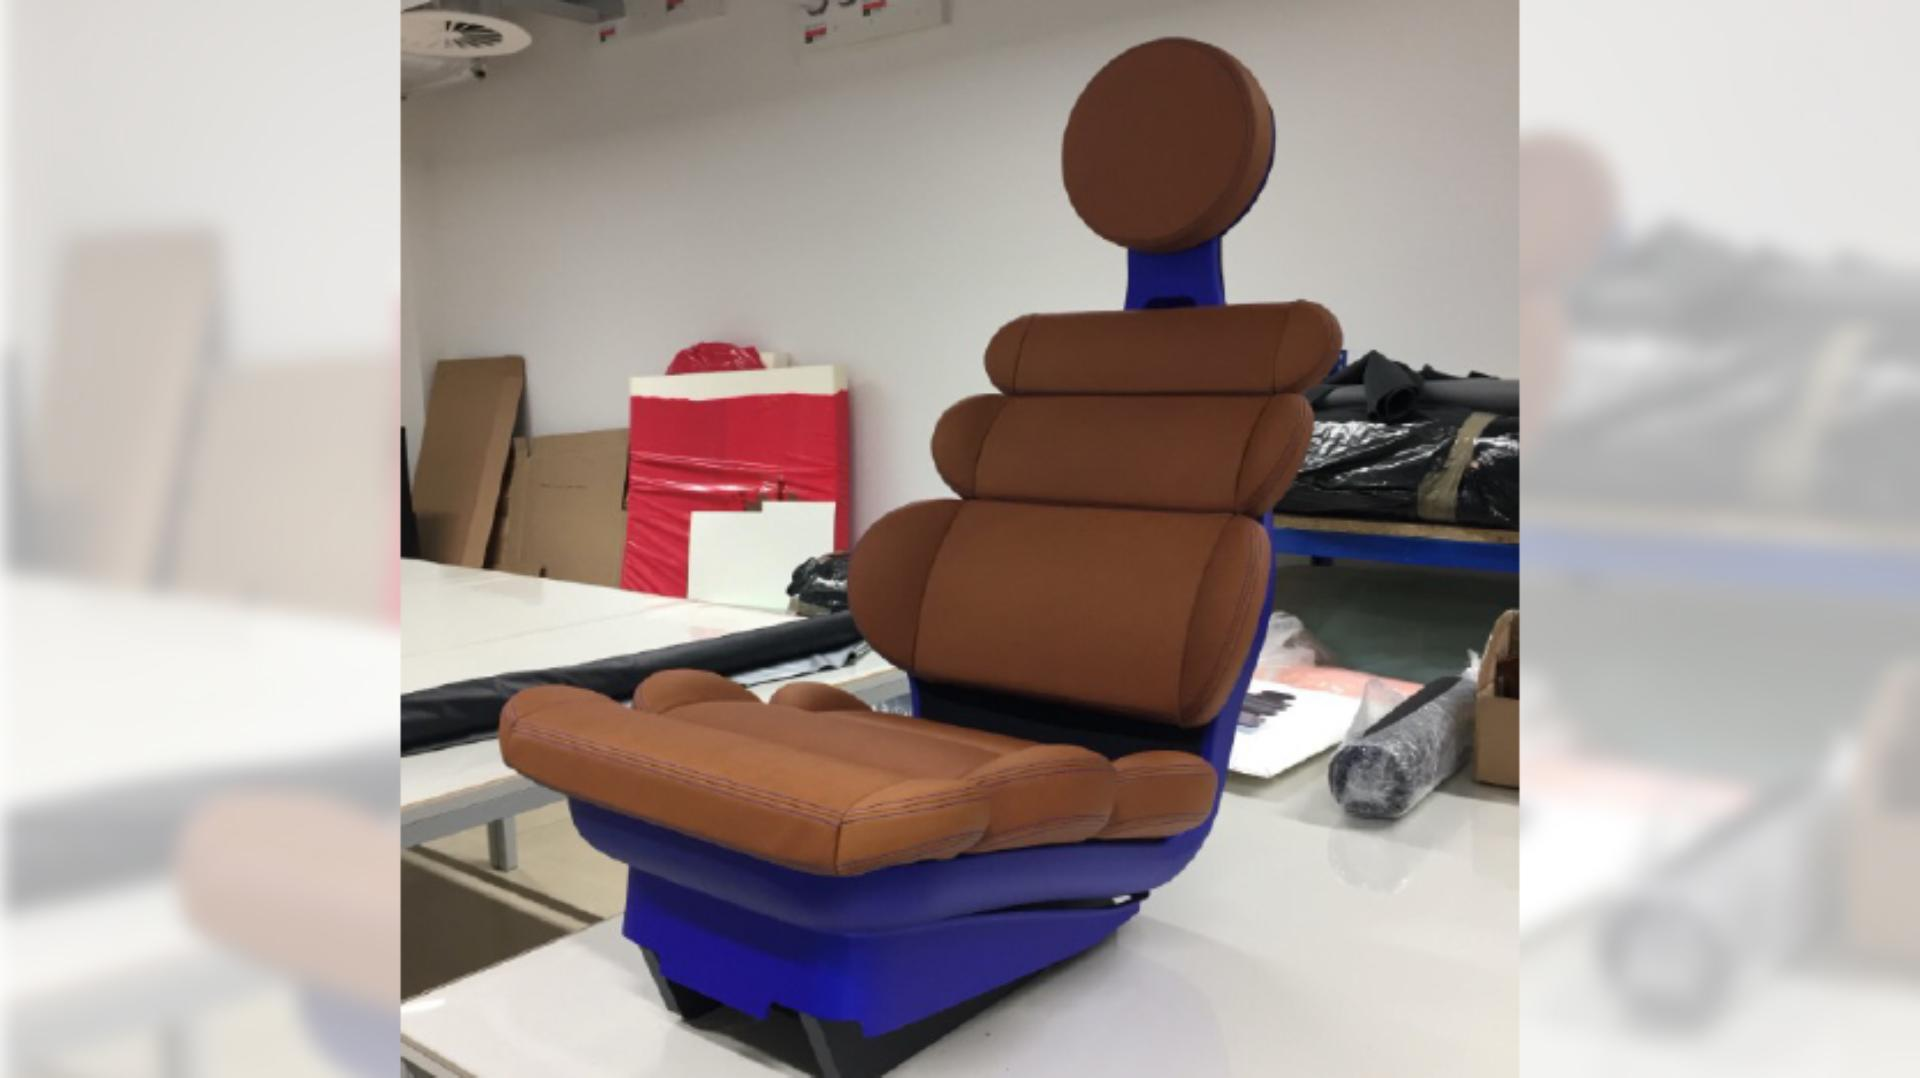 View of the Eames inspired design for the Dyson car seat